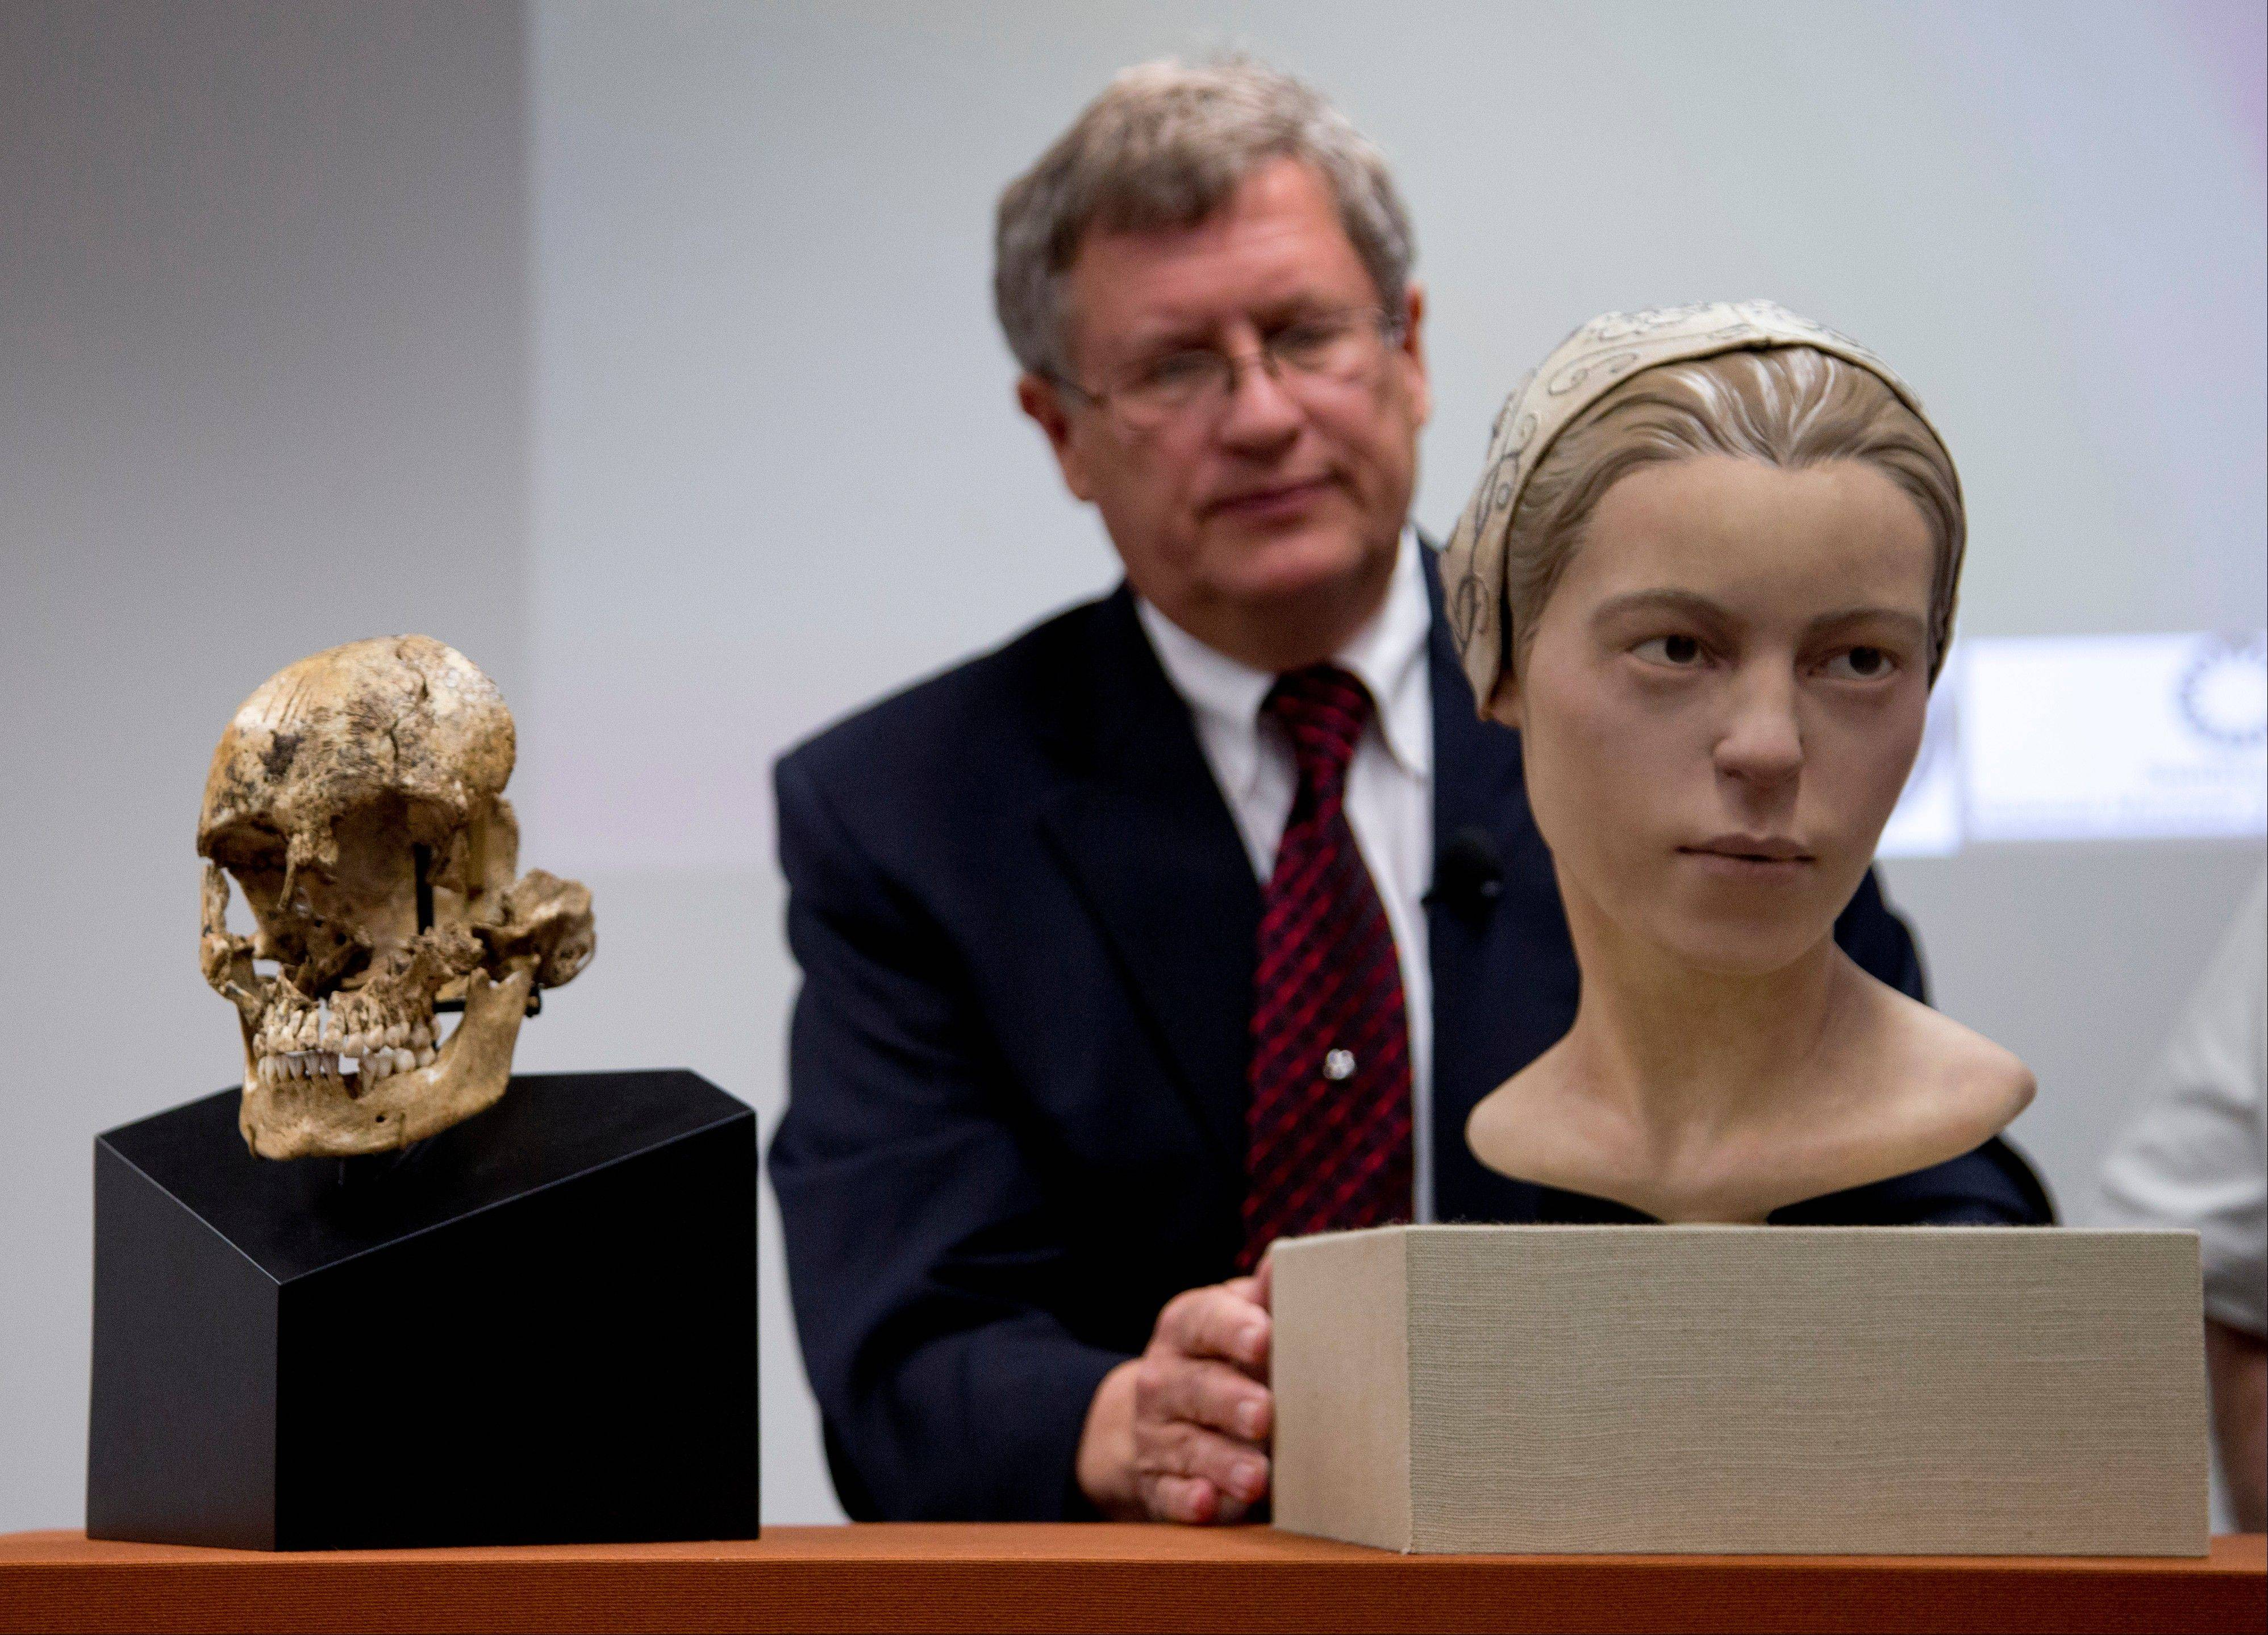 "Doug Owsley, division head for Physical Anthropology at the Smithsonian's National Museum of Natural History, displays the skull and facial reconstruction of ""Jane of Jamestown"" during a news conference at the museum in Washington, Wednesday, May 1, 2013. Scientists announced during the news conference that they have found the first solid archaeological evidence that some of the earliest American colonists at Jamestown, Va., survived harsh conditions by turning to cannibalism presenting the discovery of the bones of a 14-year-old girl, ""Jane"" that show clear signs that she was cannibalized."